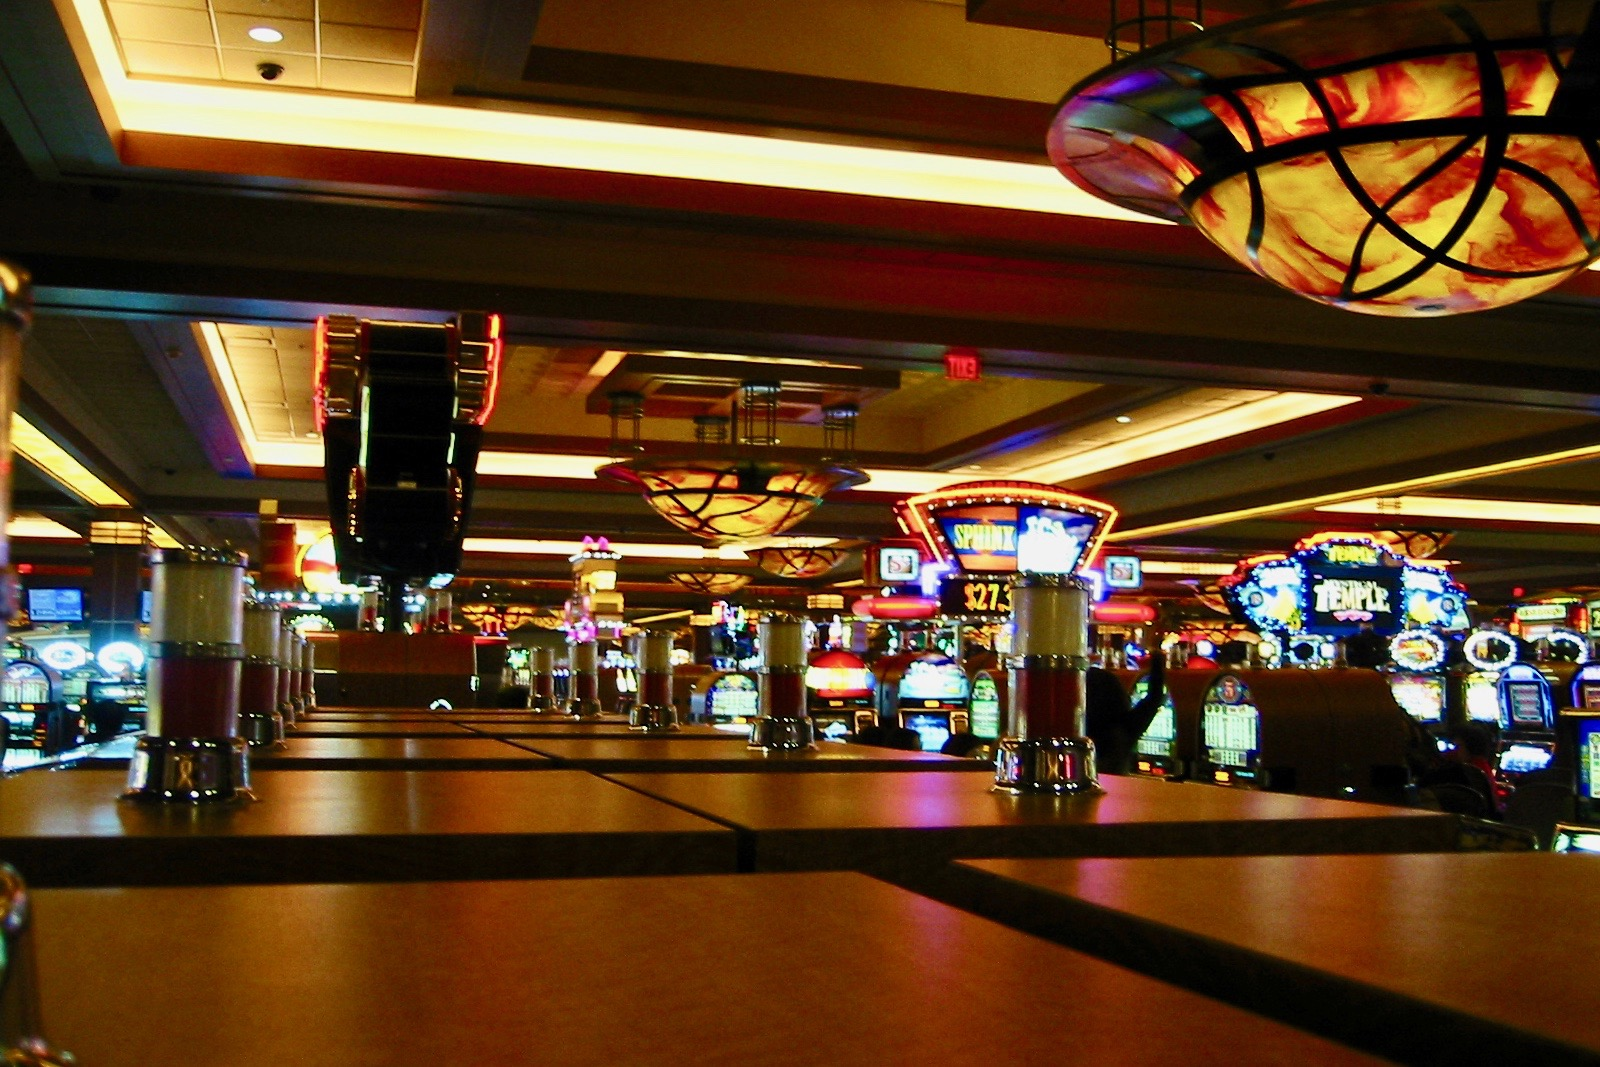 Yocha Dehe Wintun Nation reaches $161M casino mitigation deal